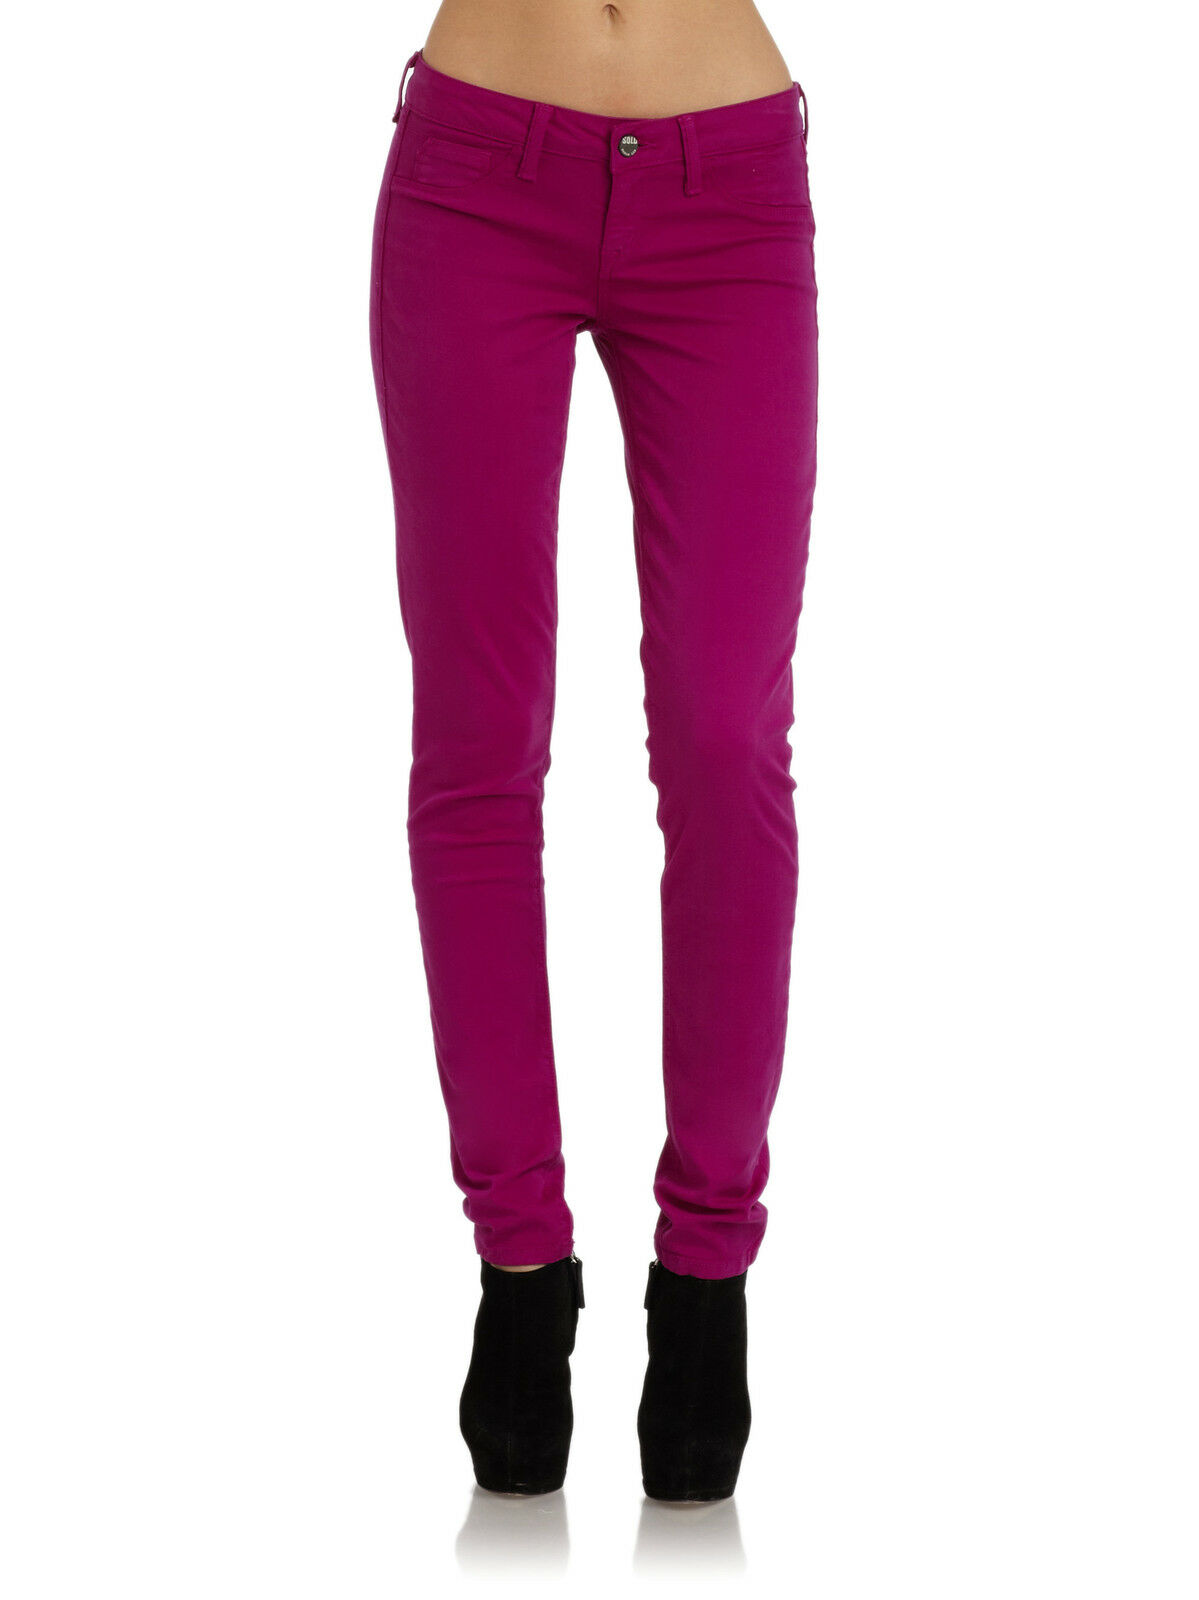 NWT SOLD DESIGN LAB JEANS WOMEN Sz26 SOHO SUPER SKINNY LEG IN PURPLE